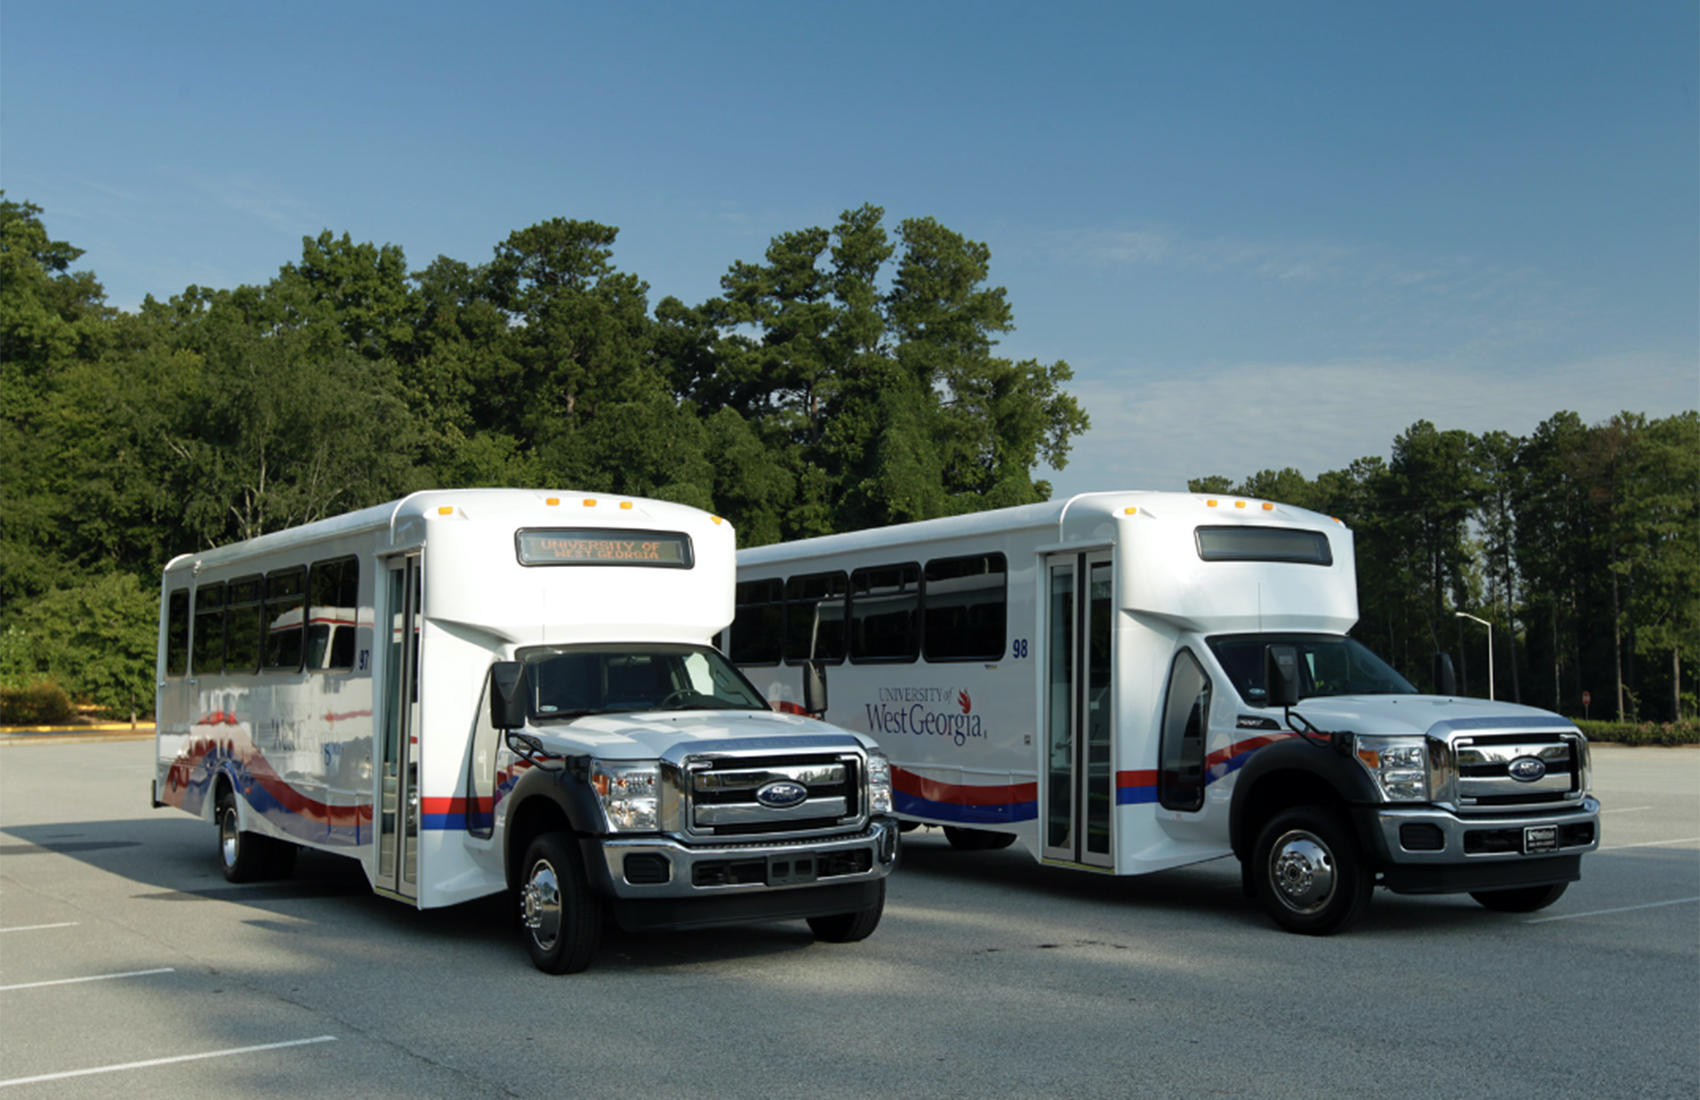 UWG buses parked on the street.